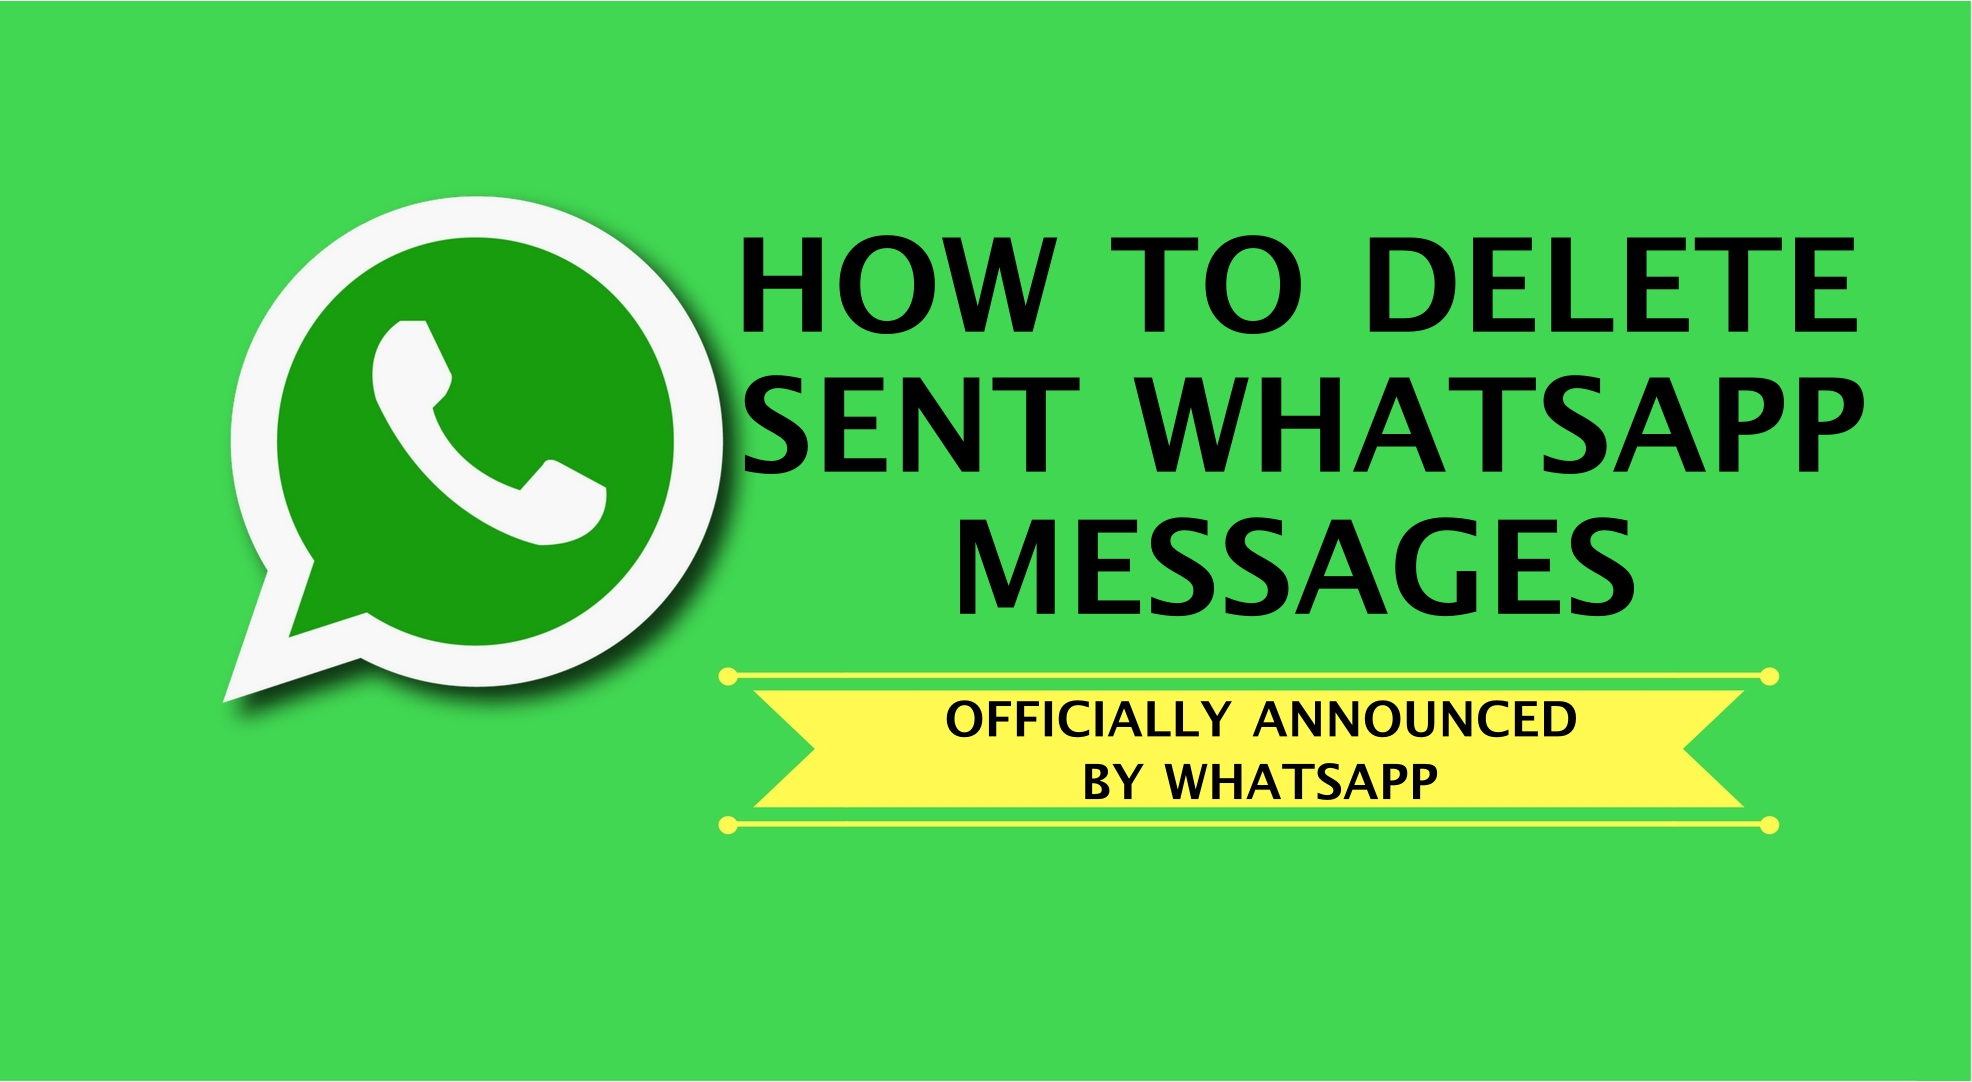 how-to-delete-sent-whatsapp-sent-messages-official-release-by-whatsapp-team